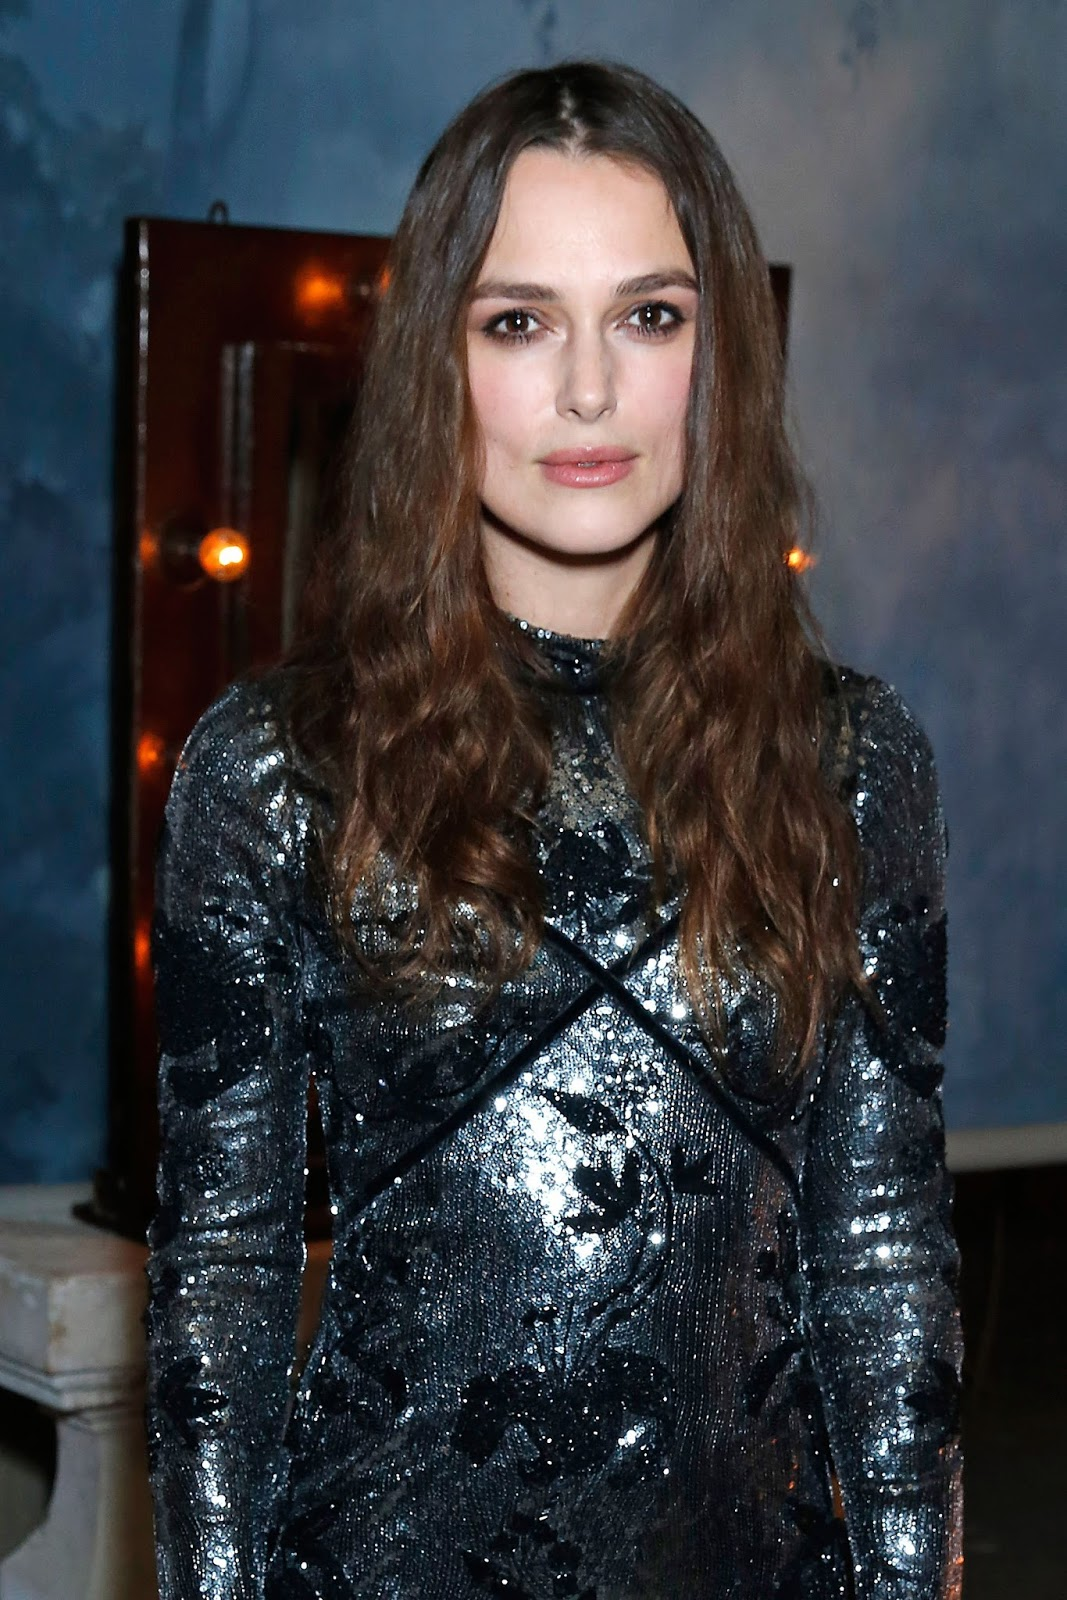 Keira Knightley - Biography, Photo, Wallpapers   Movie ...